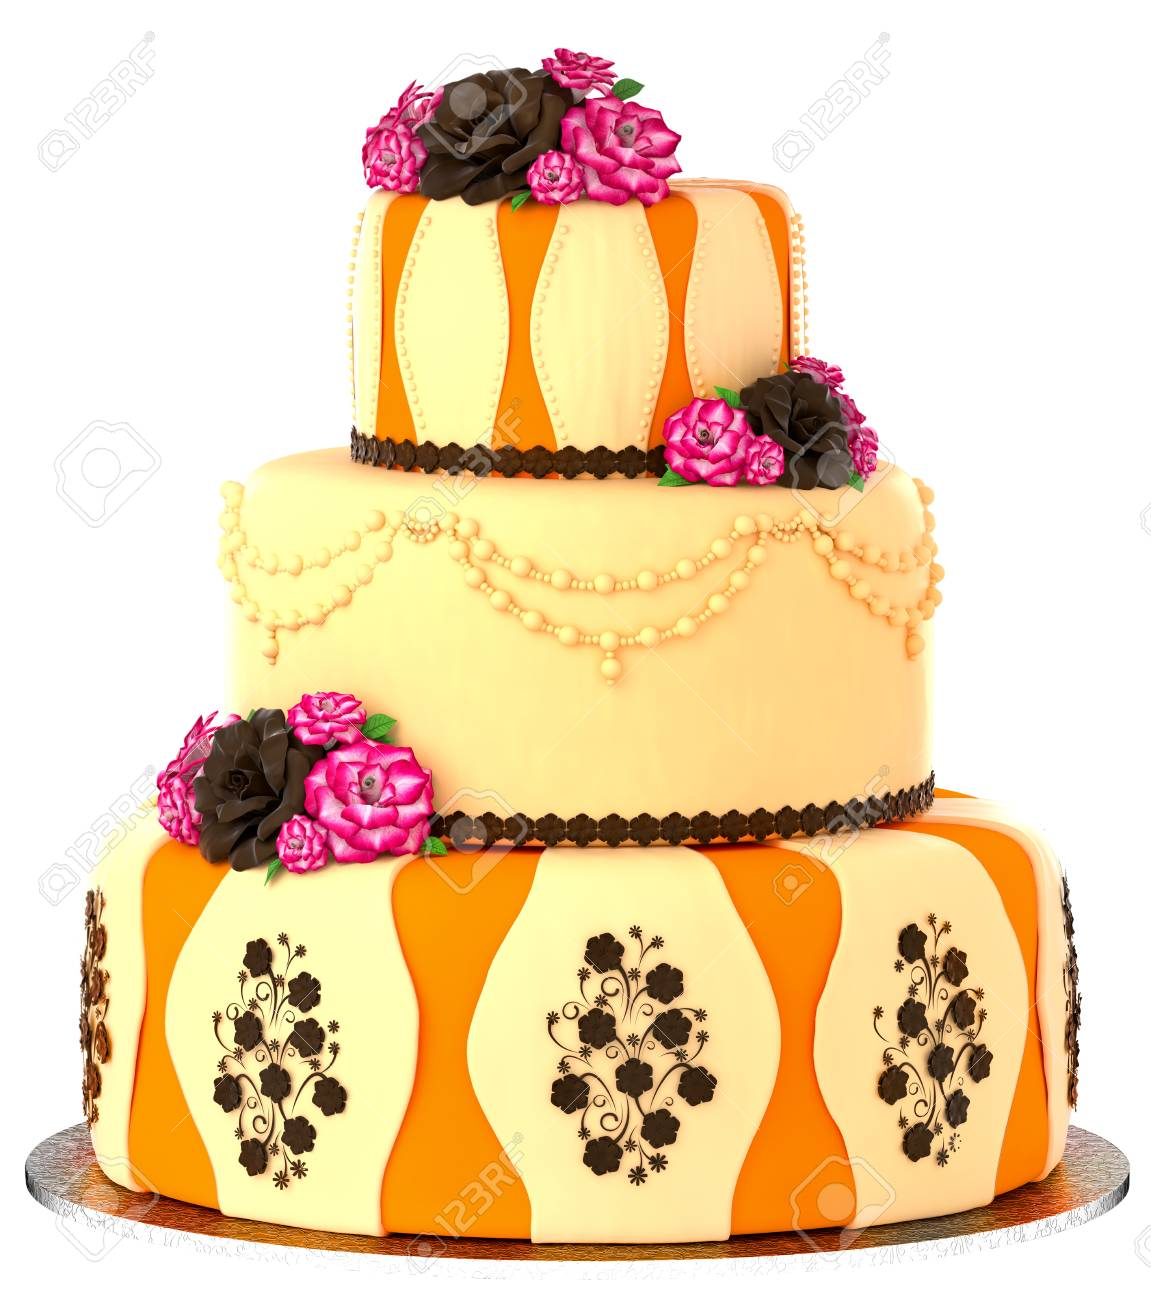 Amazing Three Tier Cake With 3 Layer Decorated Chocolate Rose And Flowers Funny Birthday Cards Online Elaedamsfinfo